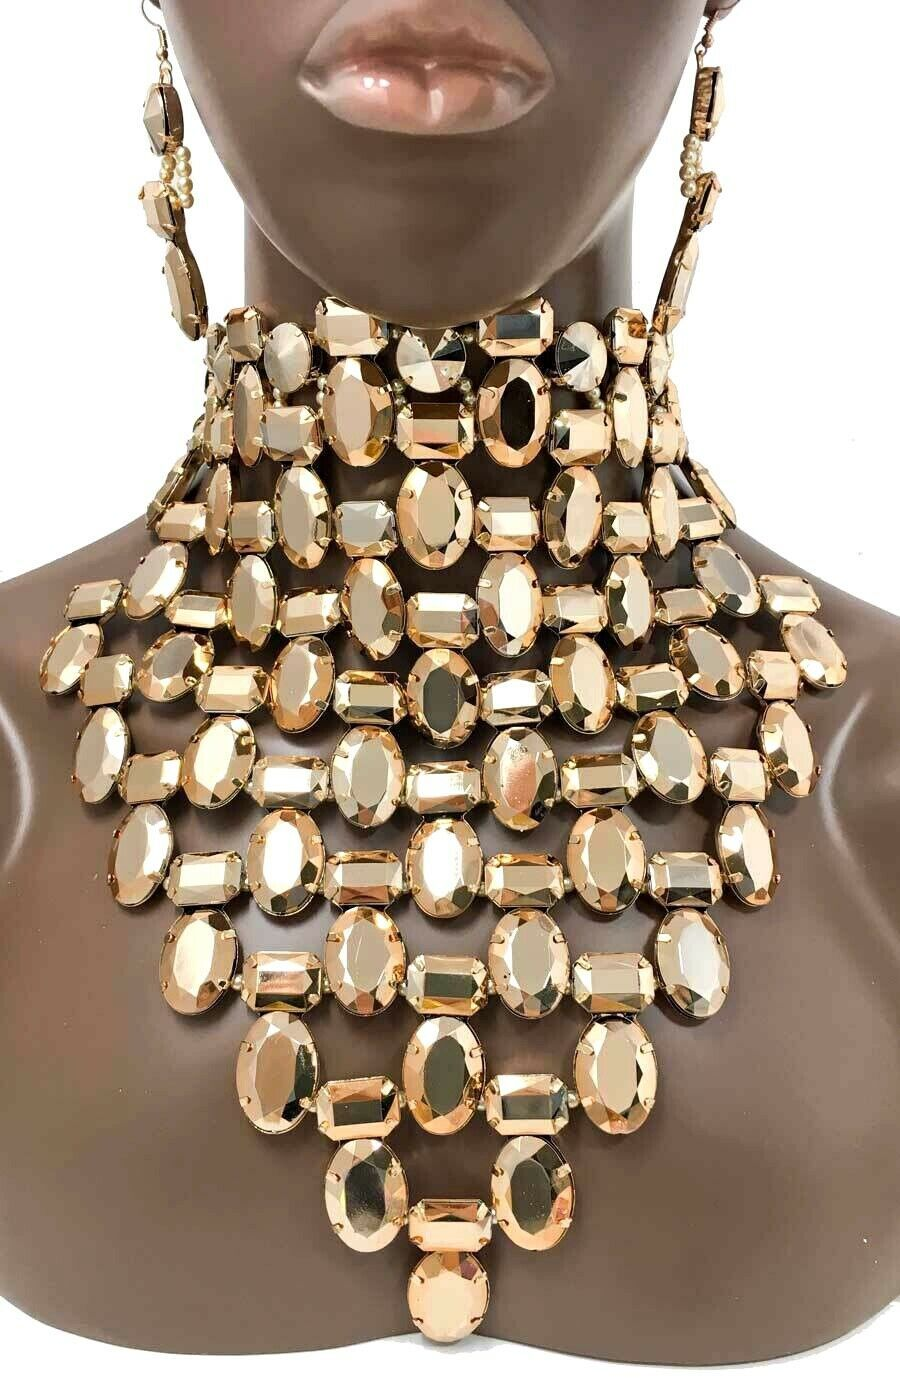 Primary image for Choker Bib Necklace Earrings Golden Acrylic Beads Drag Queen Pageant